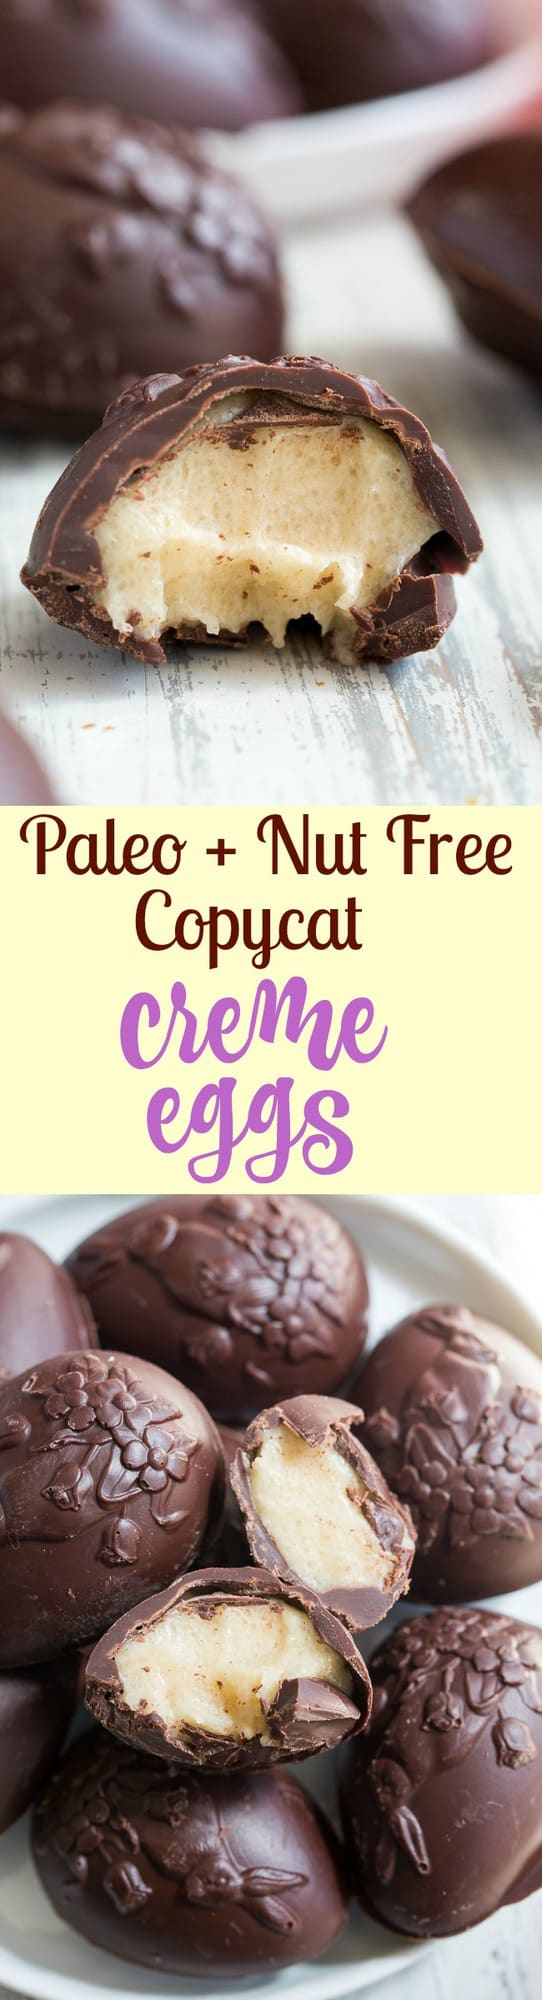 These homemade copycat Cadbury Creme Eggs are a rich and decadent paleo chocolate treat that everyone will love!  Easy to make - the filling comes together in just a few minutes and contains no nuts or refined sugar, and has a dairy free option.